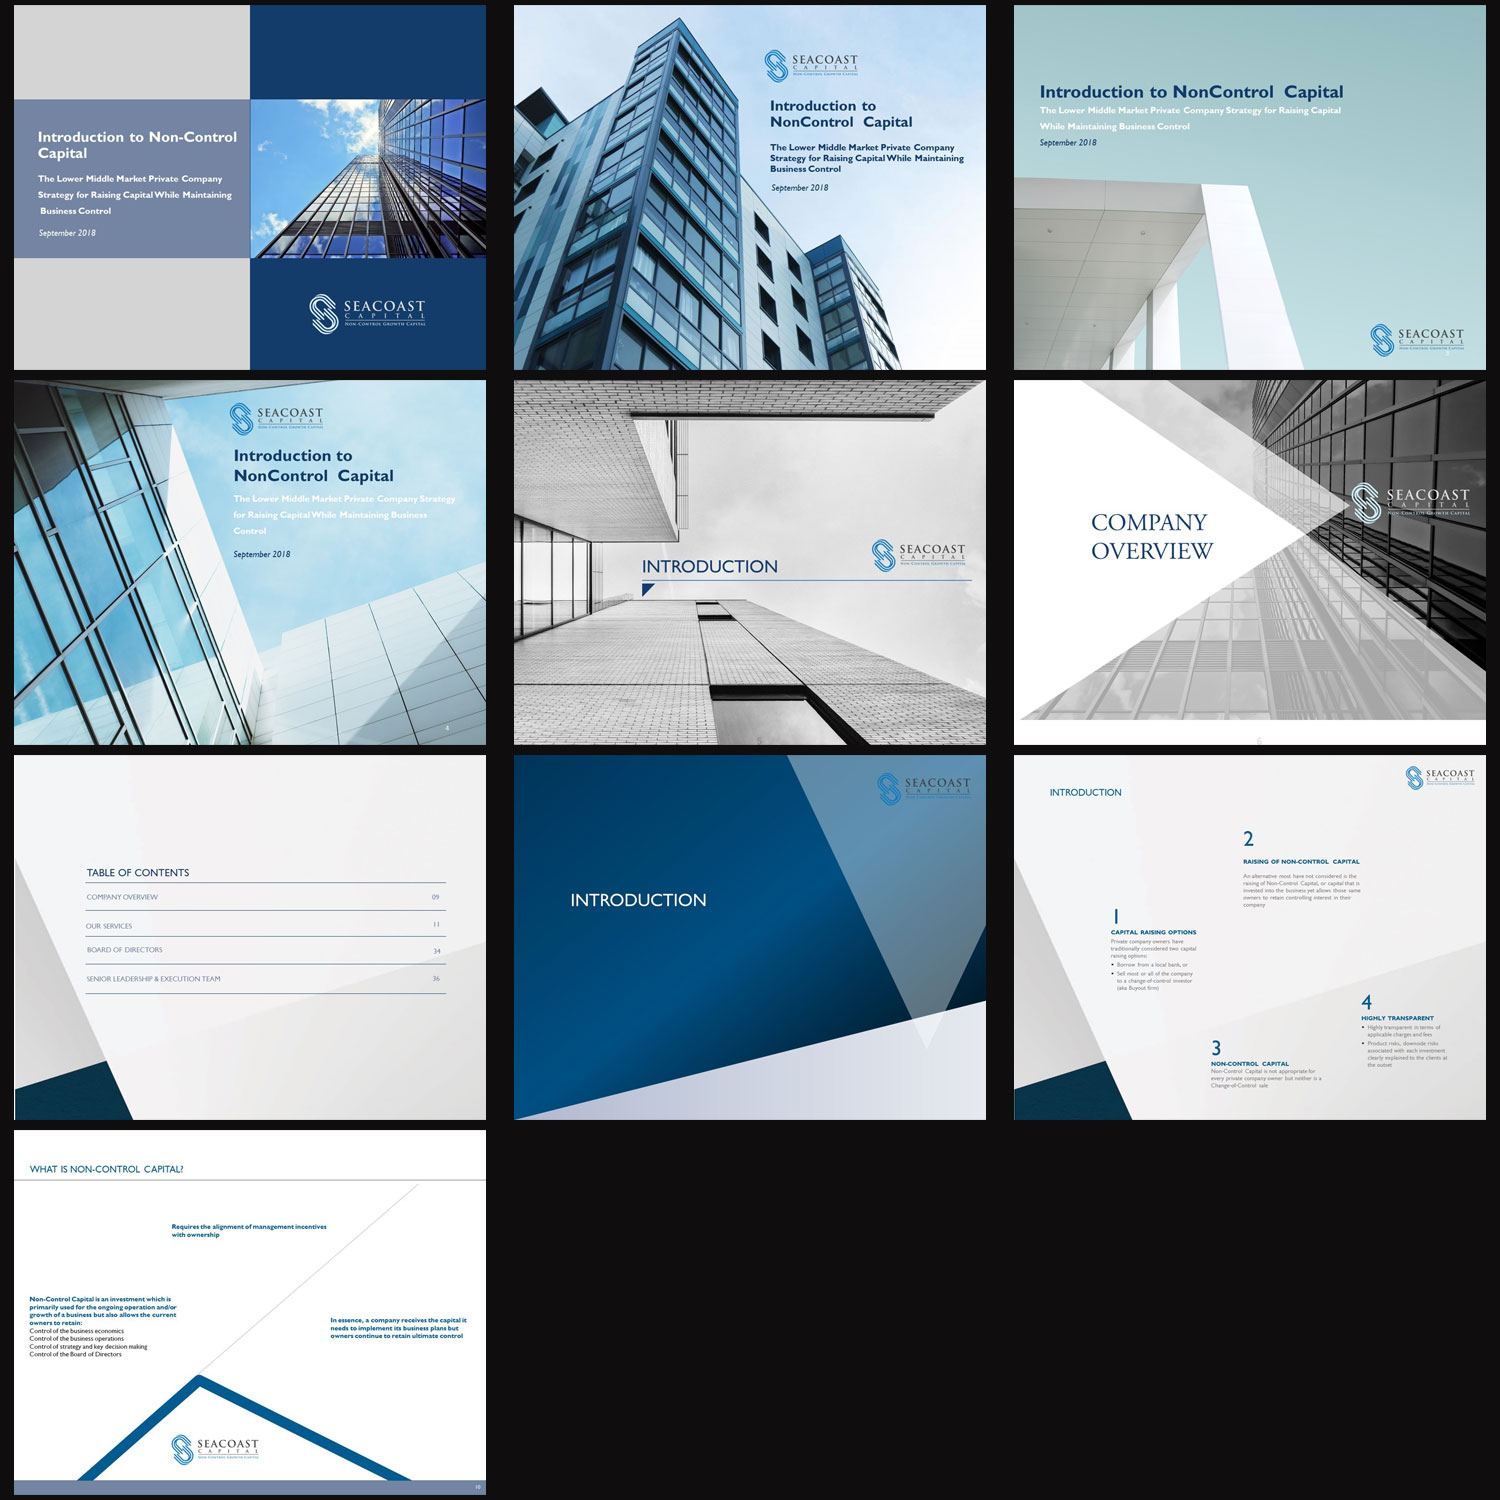 Serious, Professional PowerPoint Design for Seacoast Capital